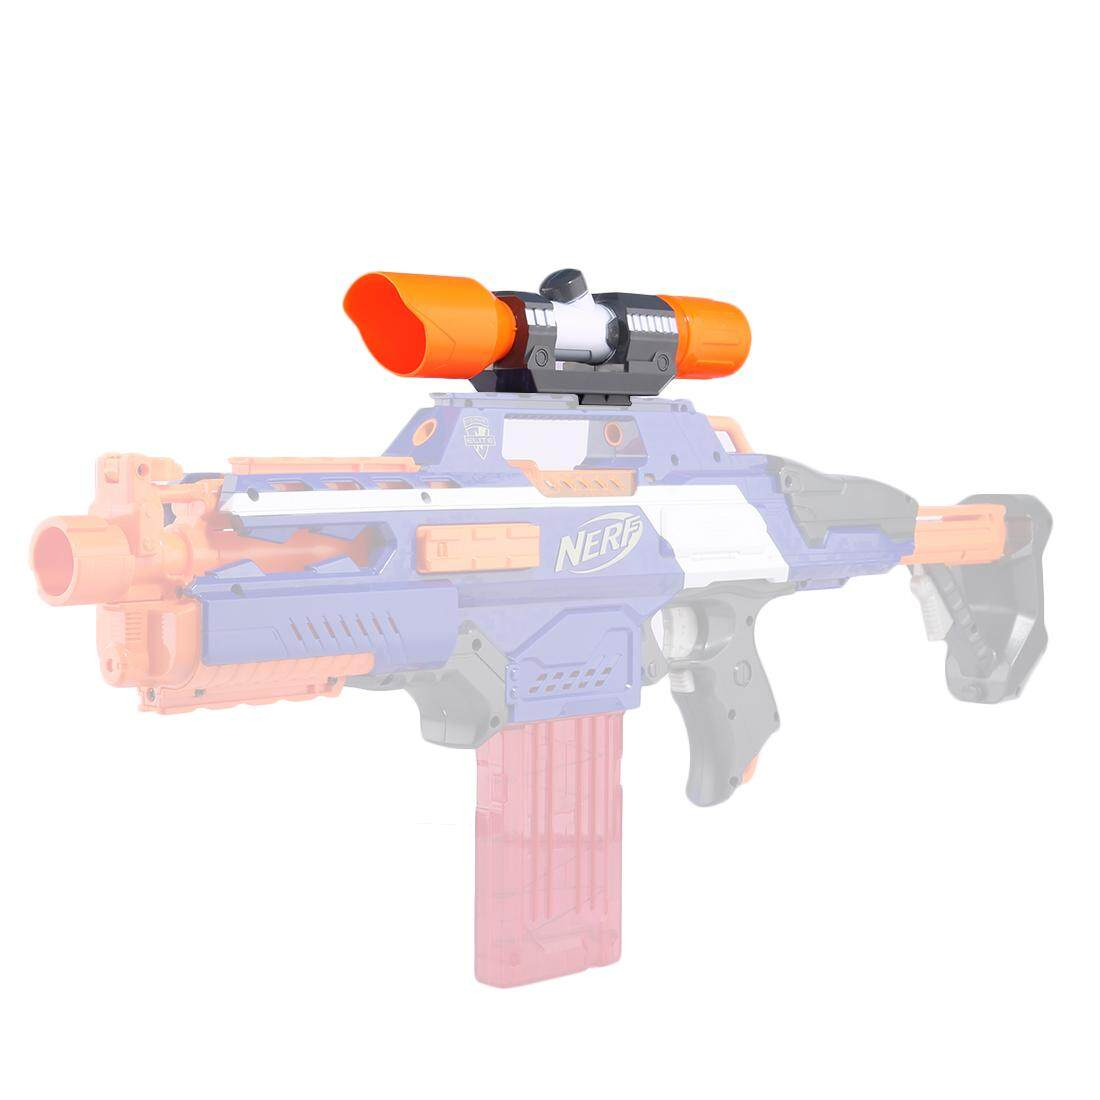 Hình ảnh 360WISH Modified Part Front Tube Sighting Device for Nerf Elite Series - Orange + Grey